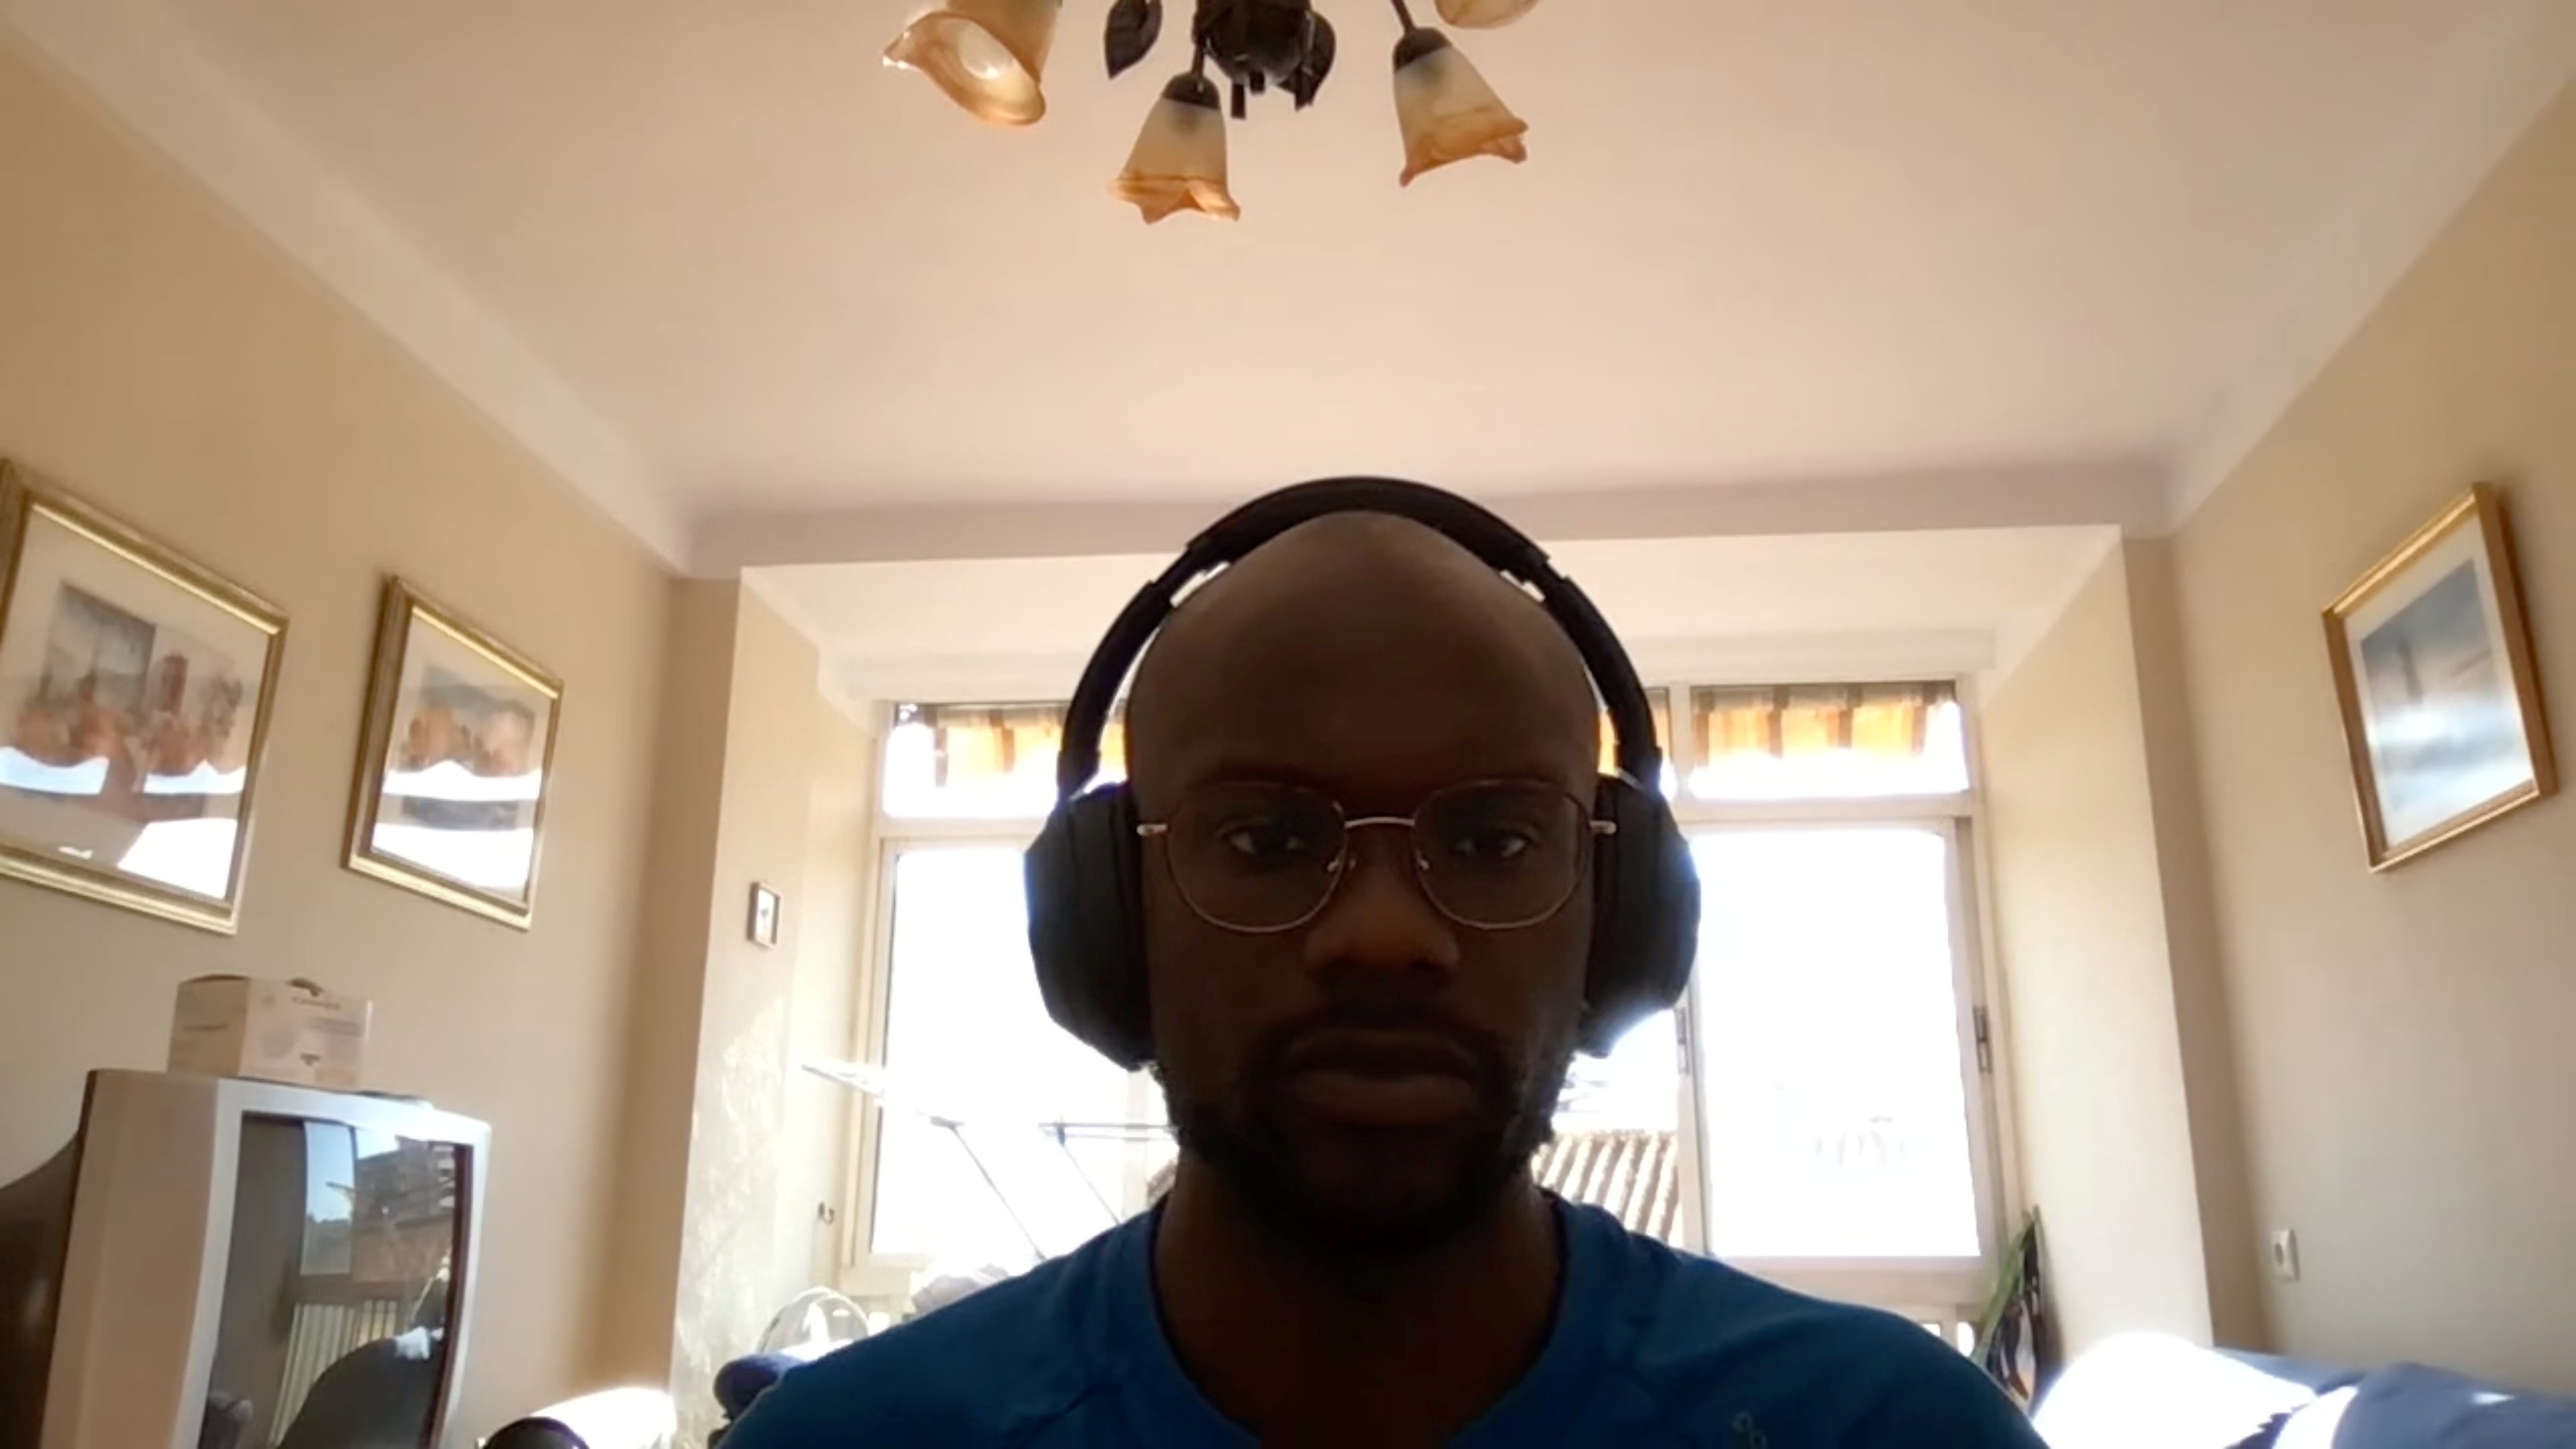 A screengrab dated June 2, 2021 shows a user during a Google Meet video call appearing underexposed because of the stark contrast in light between the foreground and background. Google/Handout via REUTERS